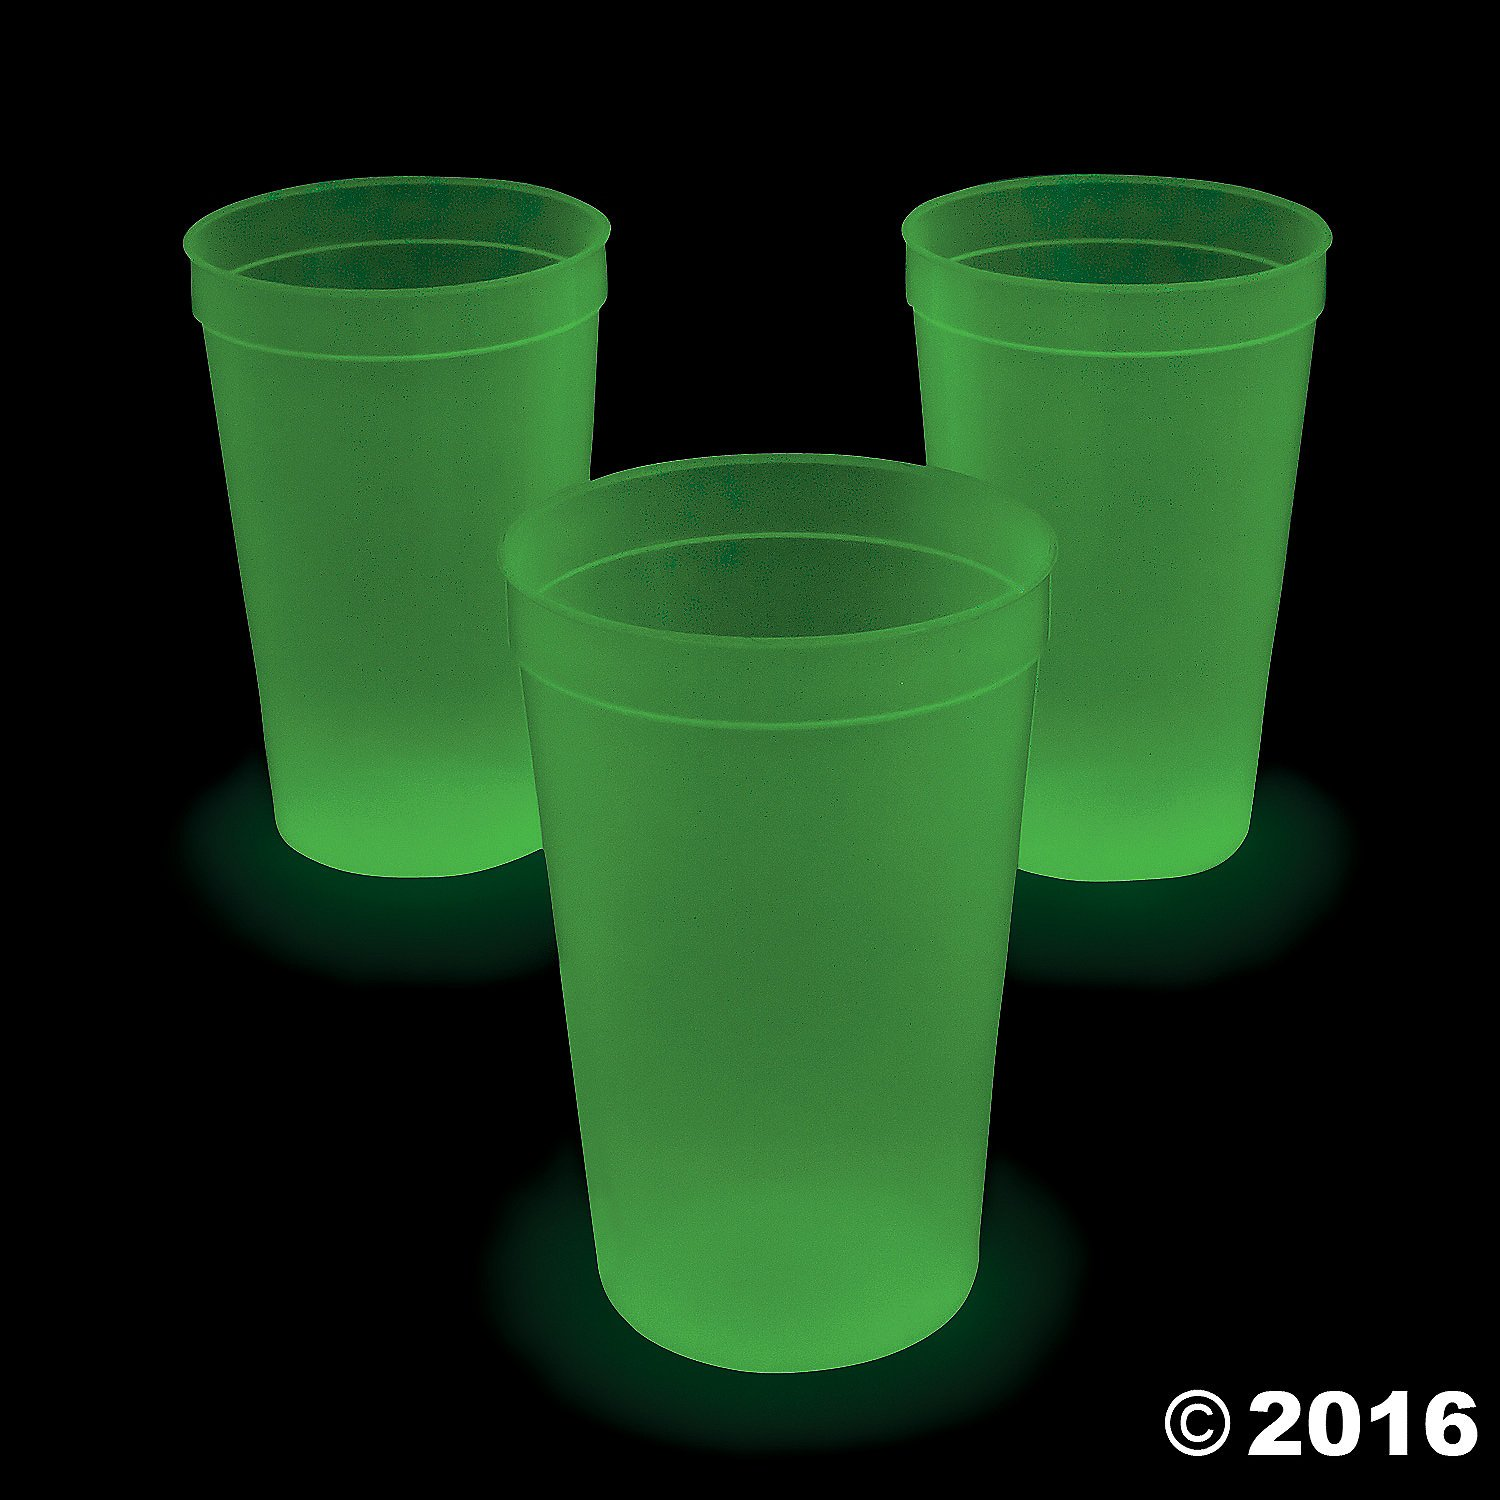 Extra Large Glow-in-the-Dark Plastic Tumblers